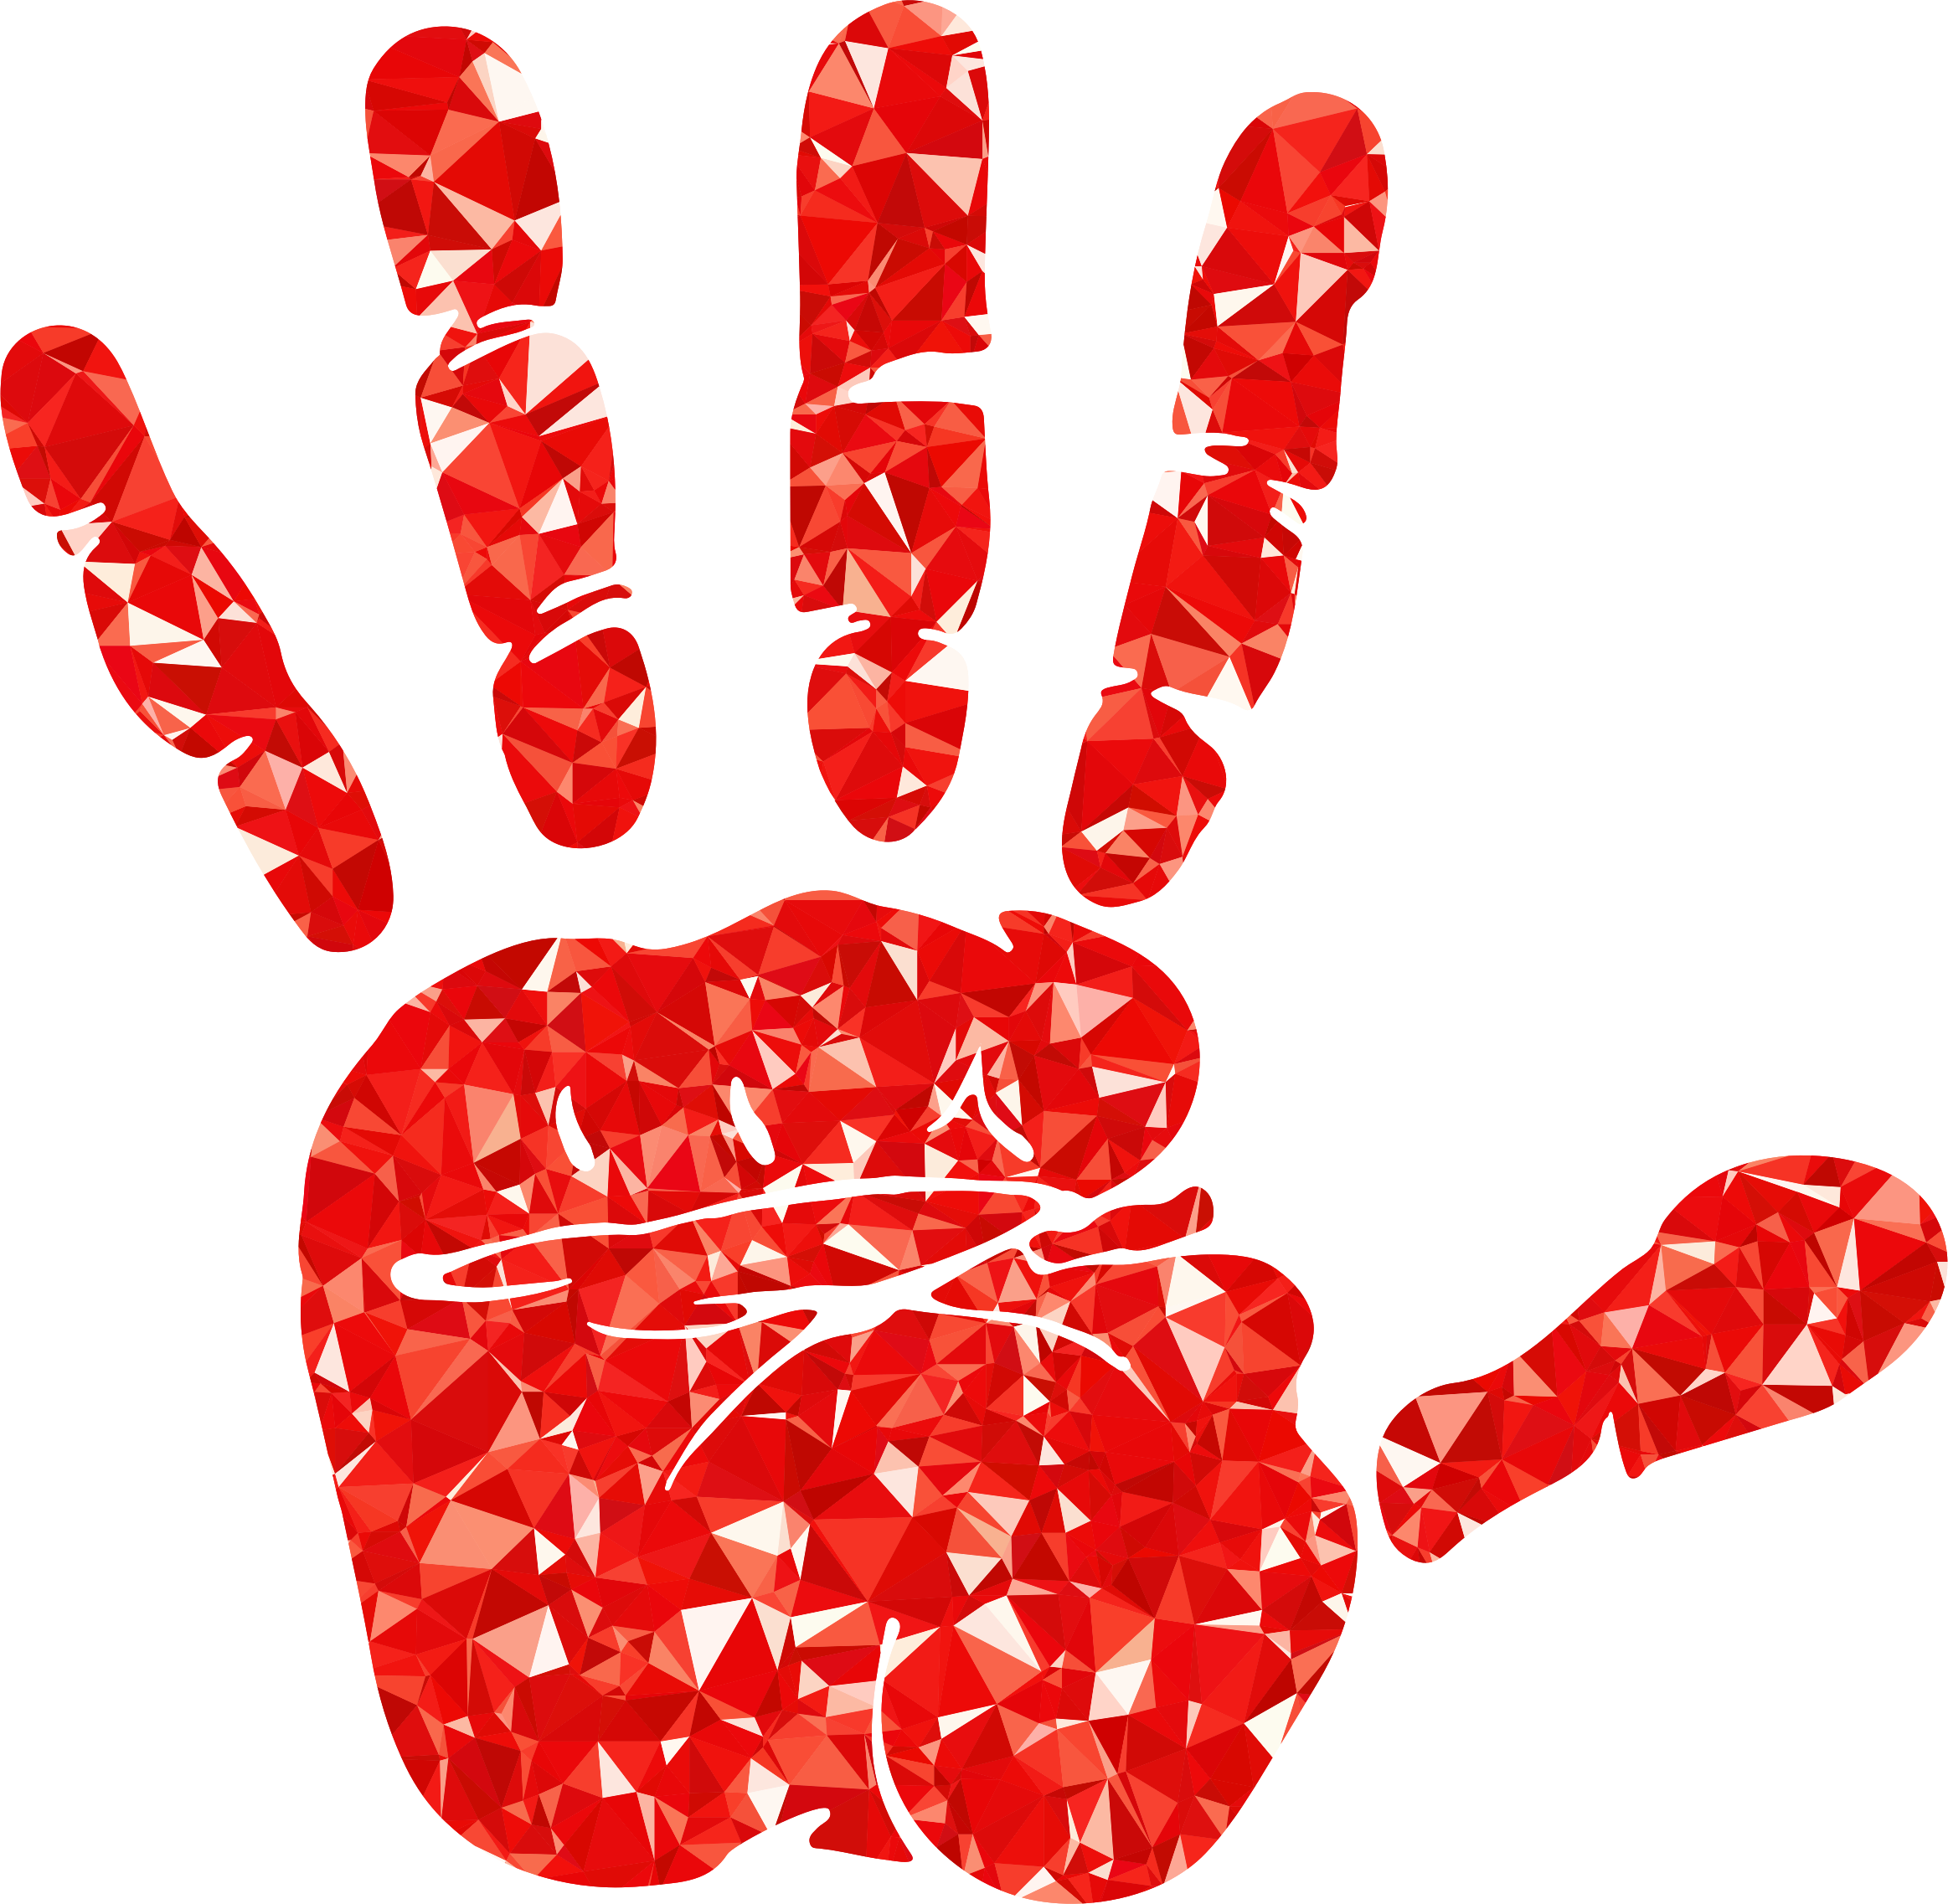 Ruby Handprint Silhouette by GDJ